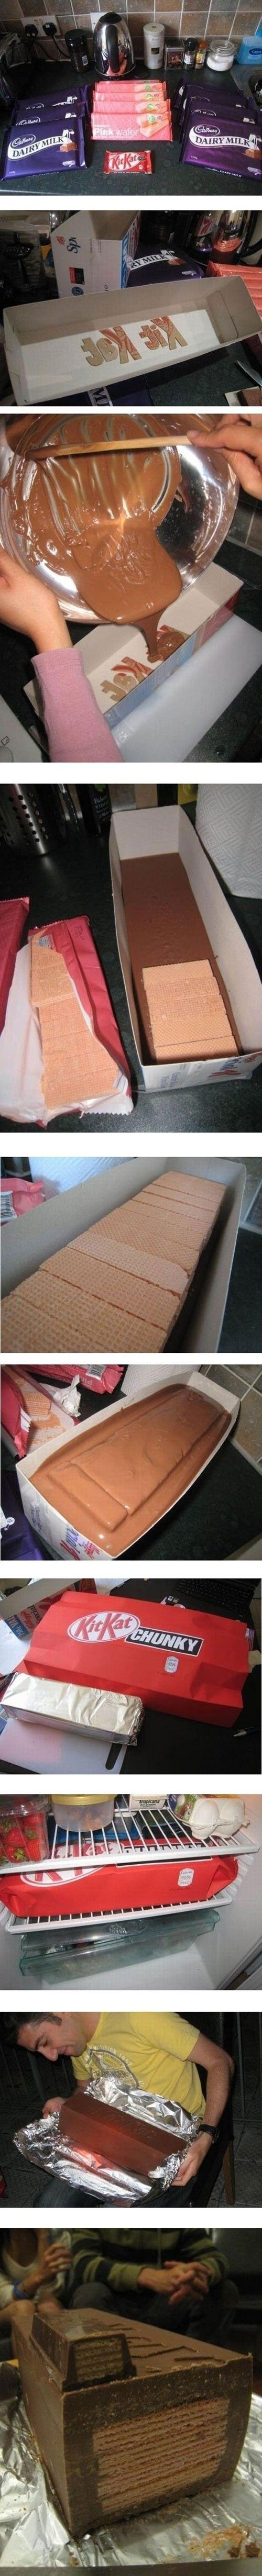 How to make a huge Kit Kat just in case I ever need one.